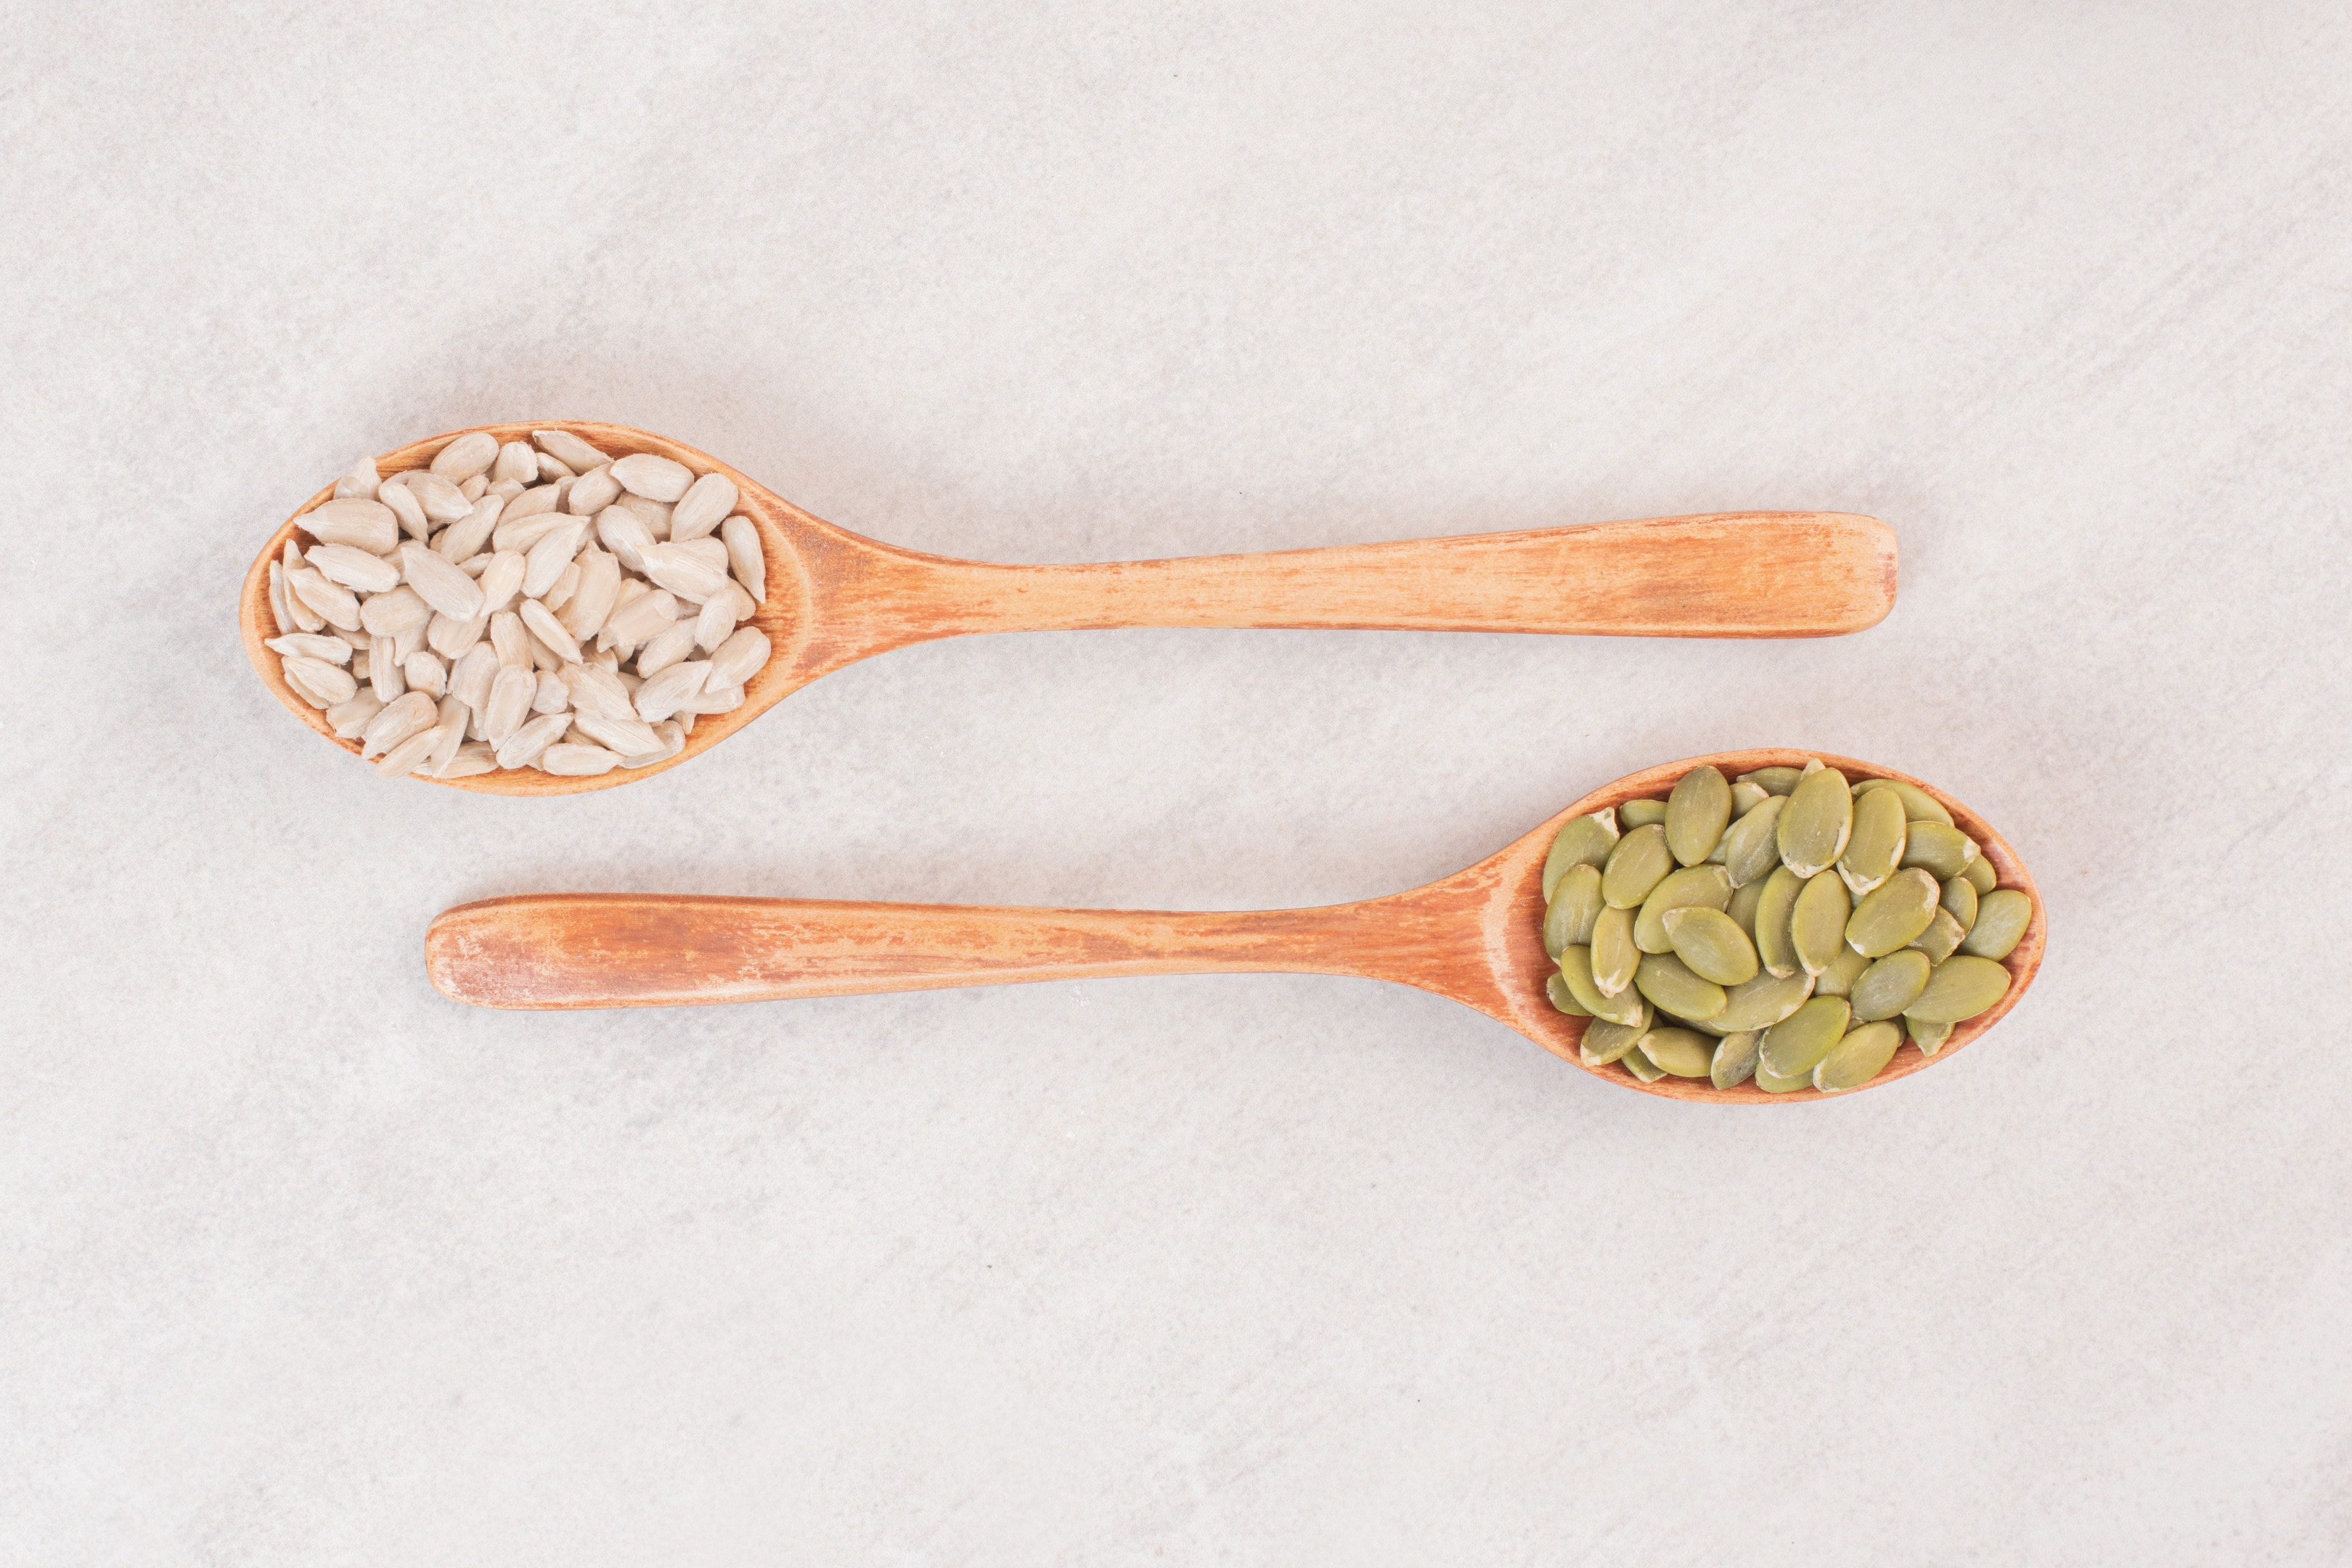 Two wooden spoon with sunflower and pumpkin seeds on white surface